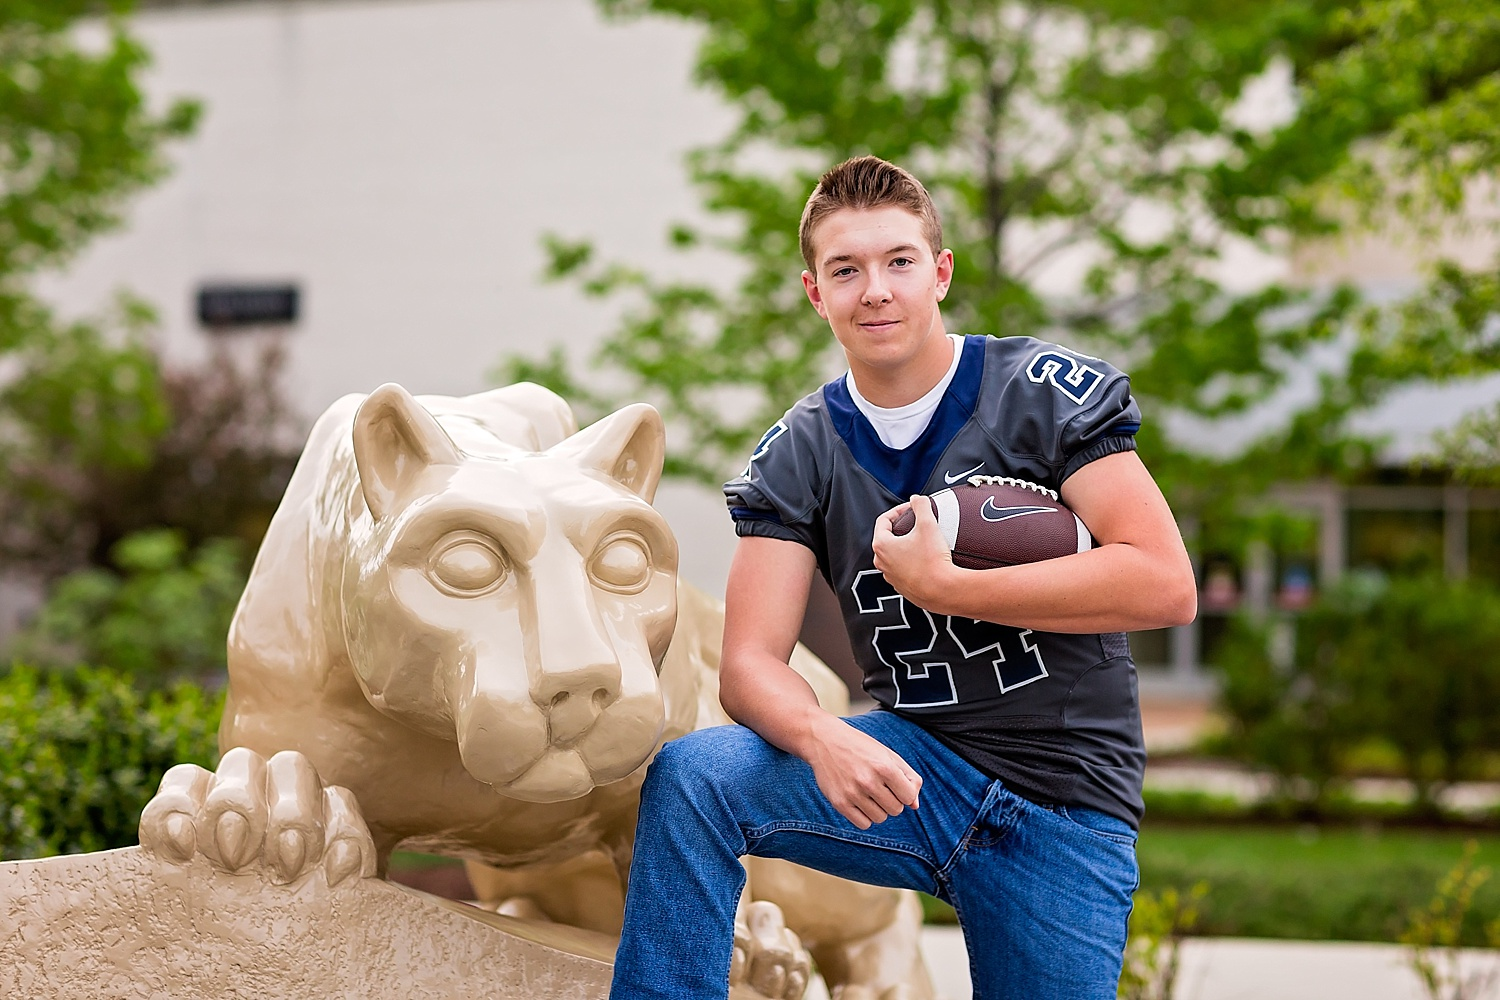 Penn State Berks high school senior photographer